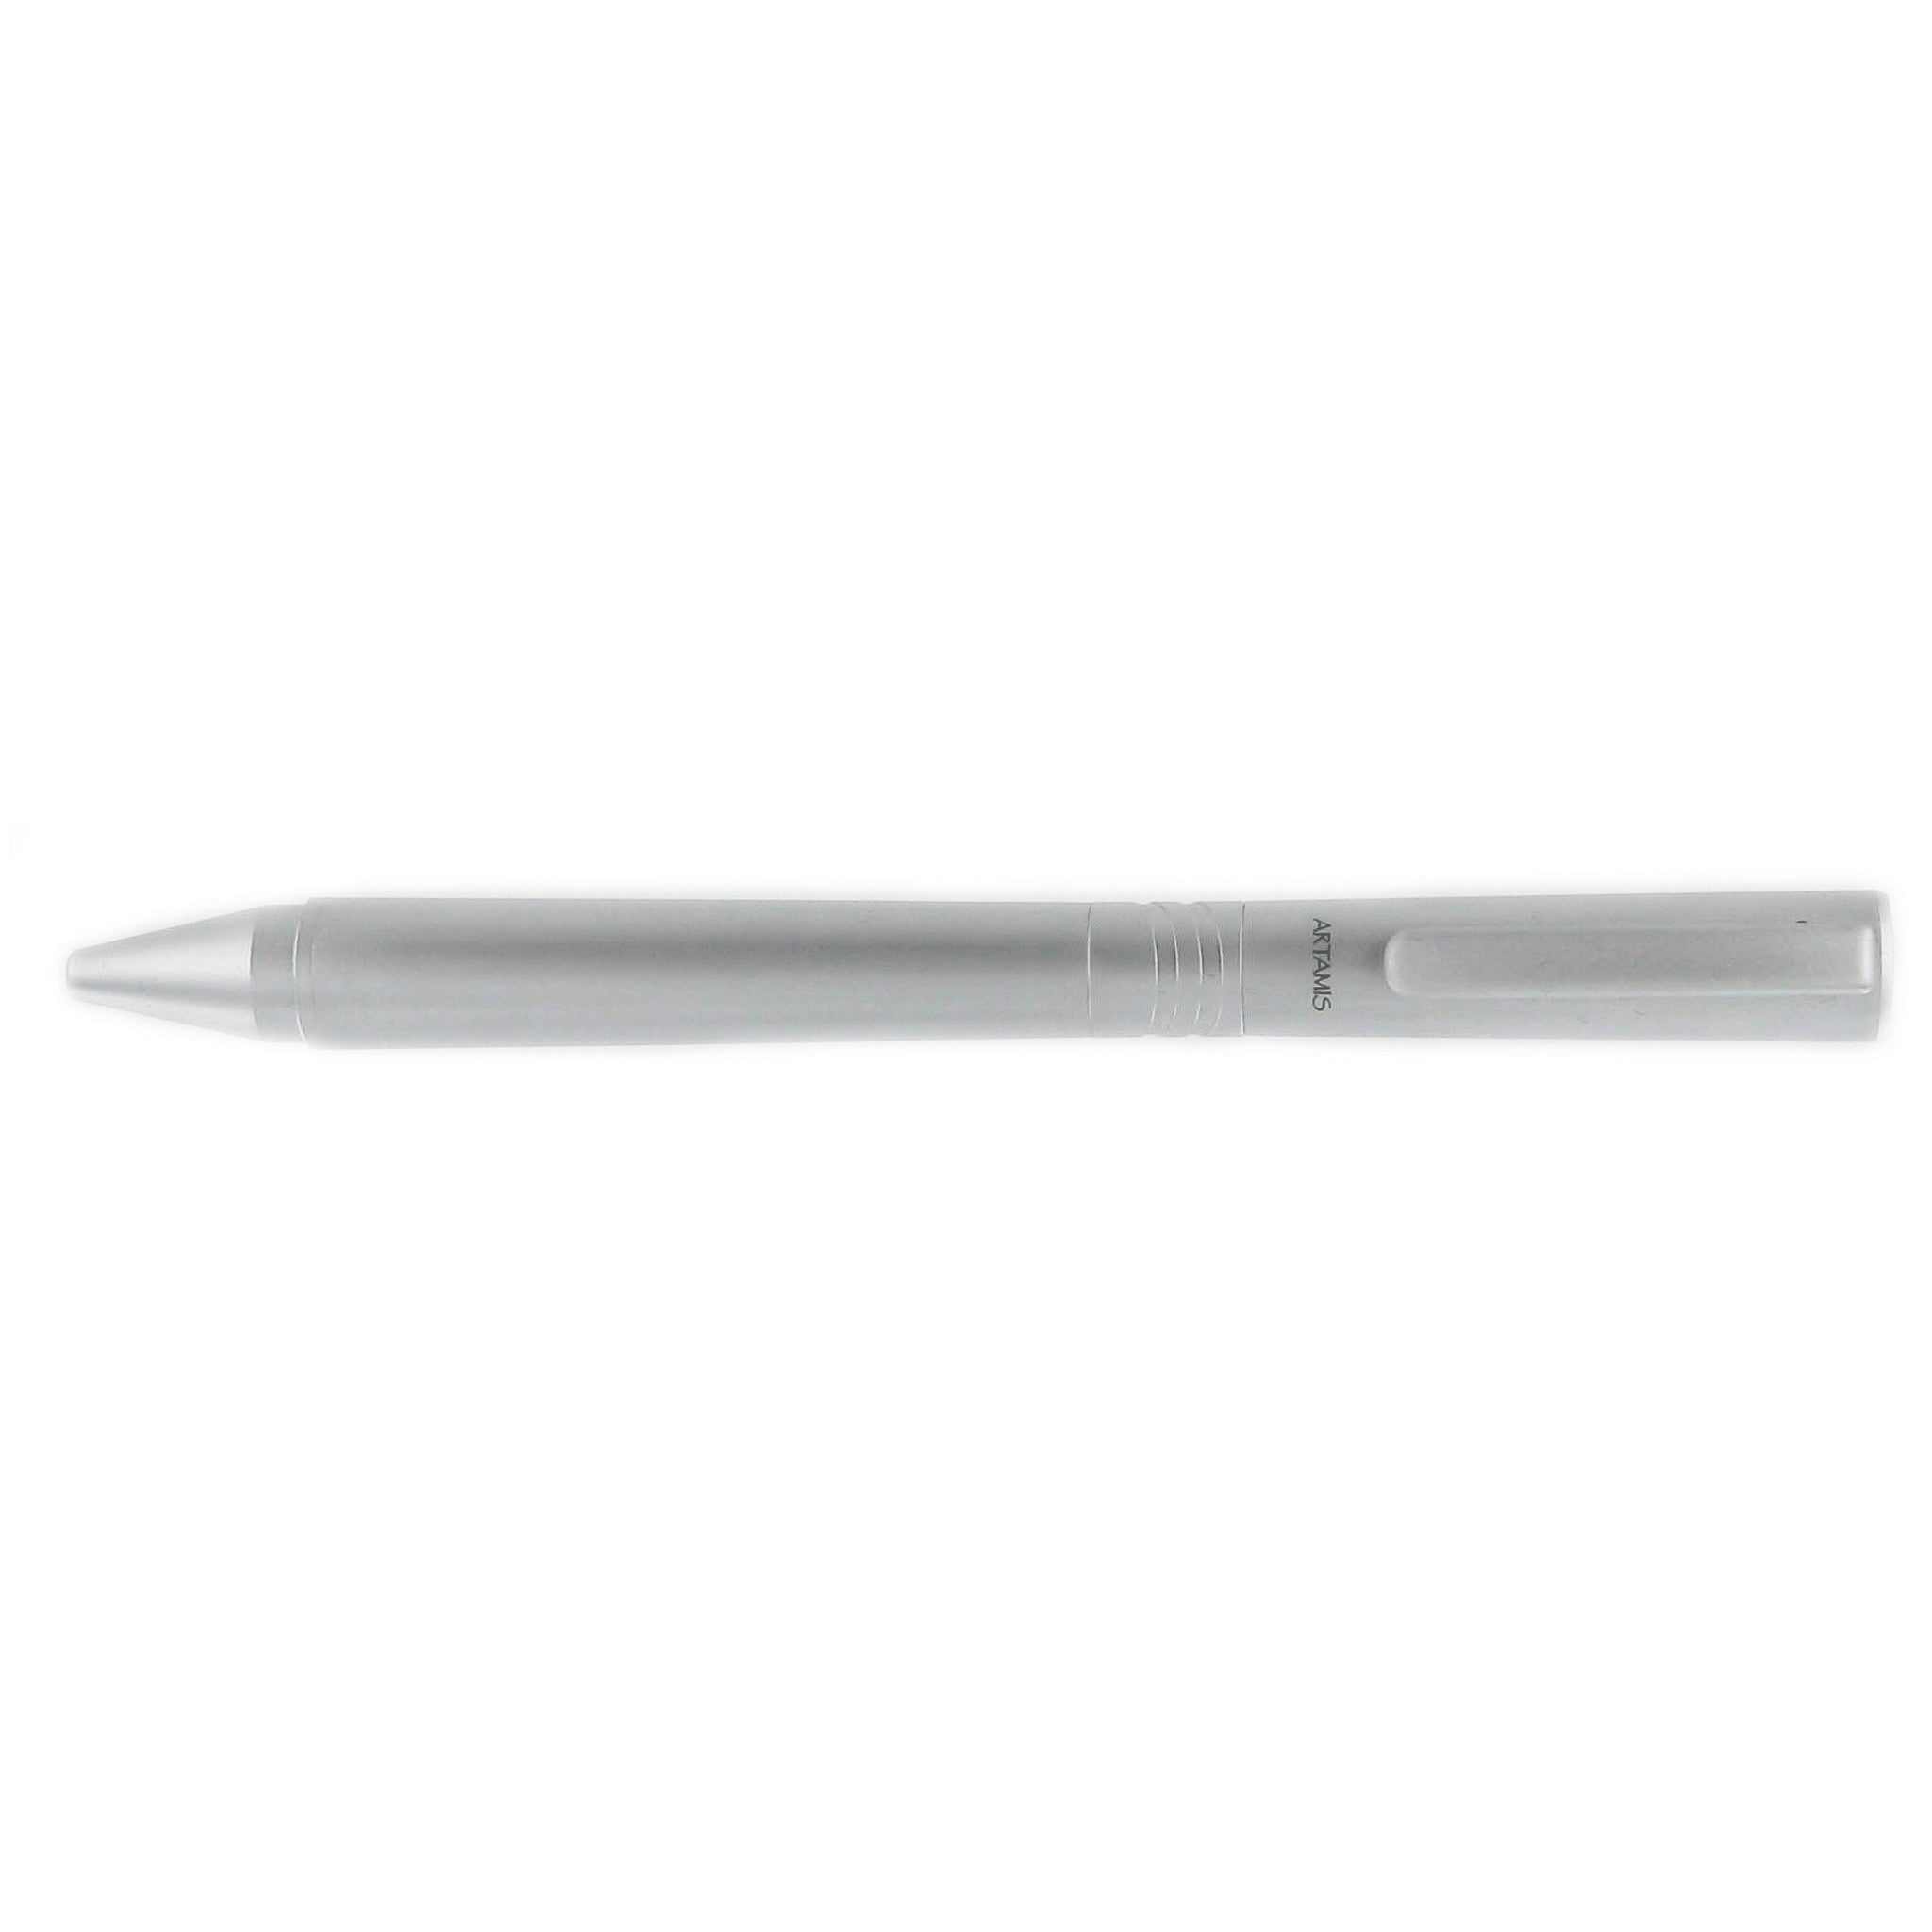 Grand Libra Twist Ballpoint Pen, Silver Satin Finish